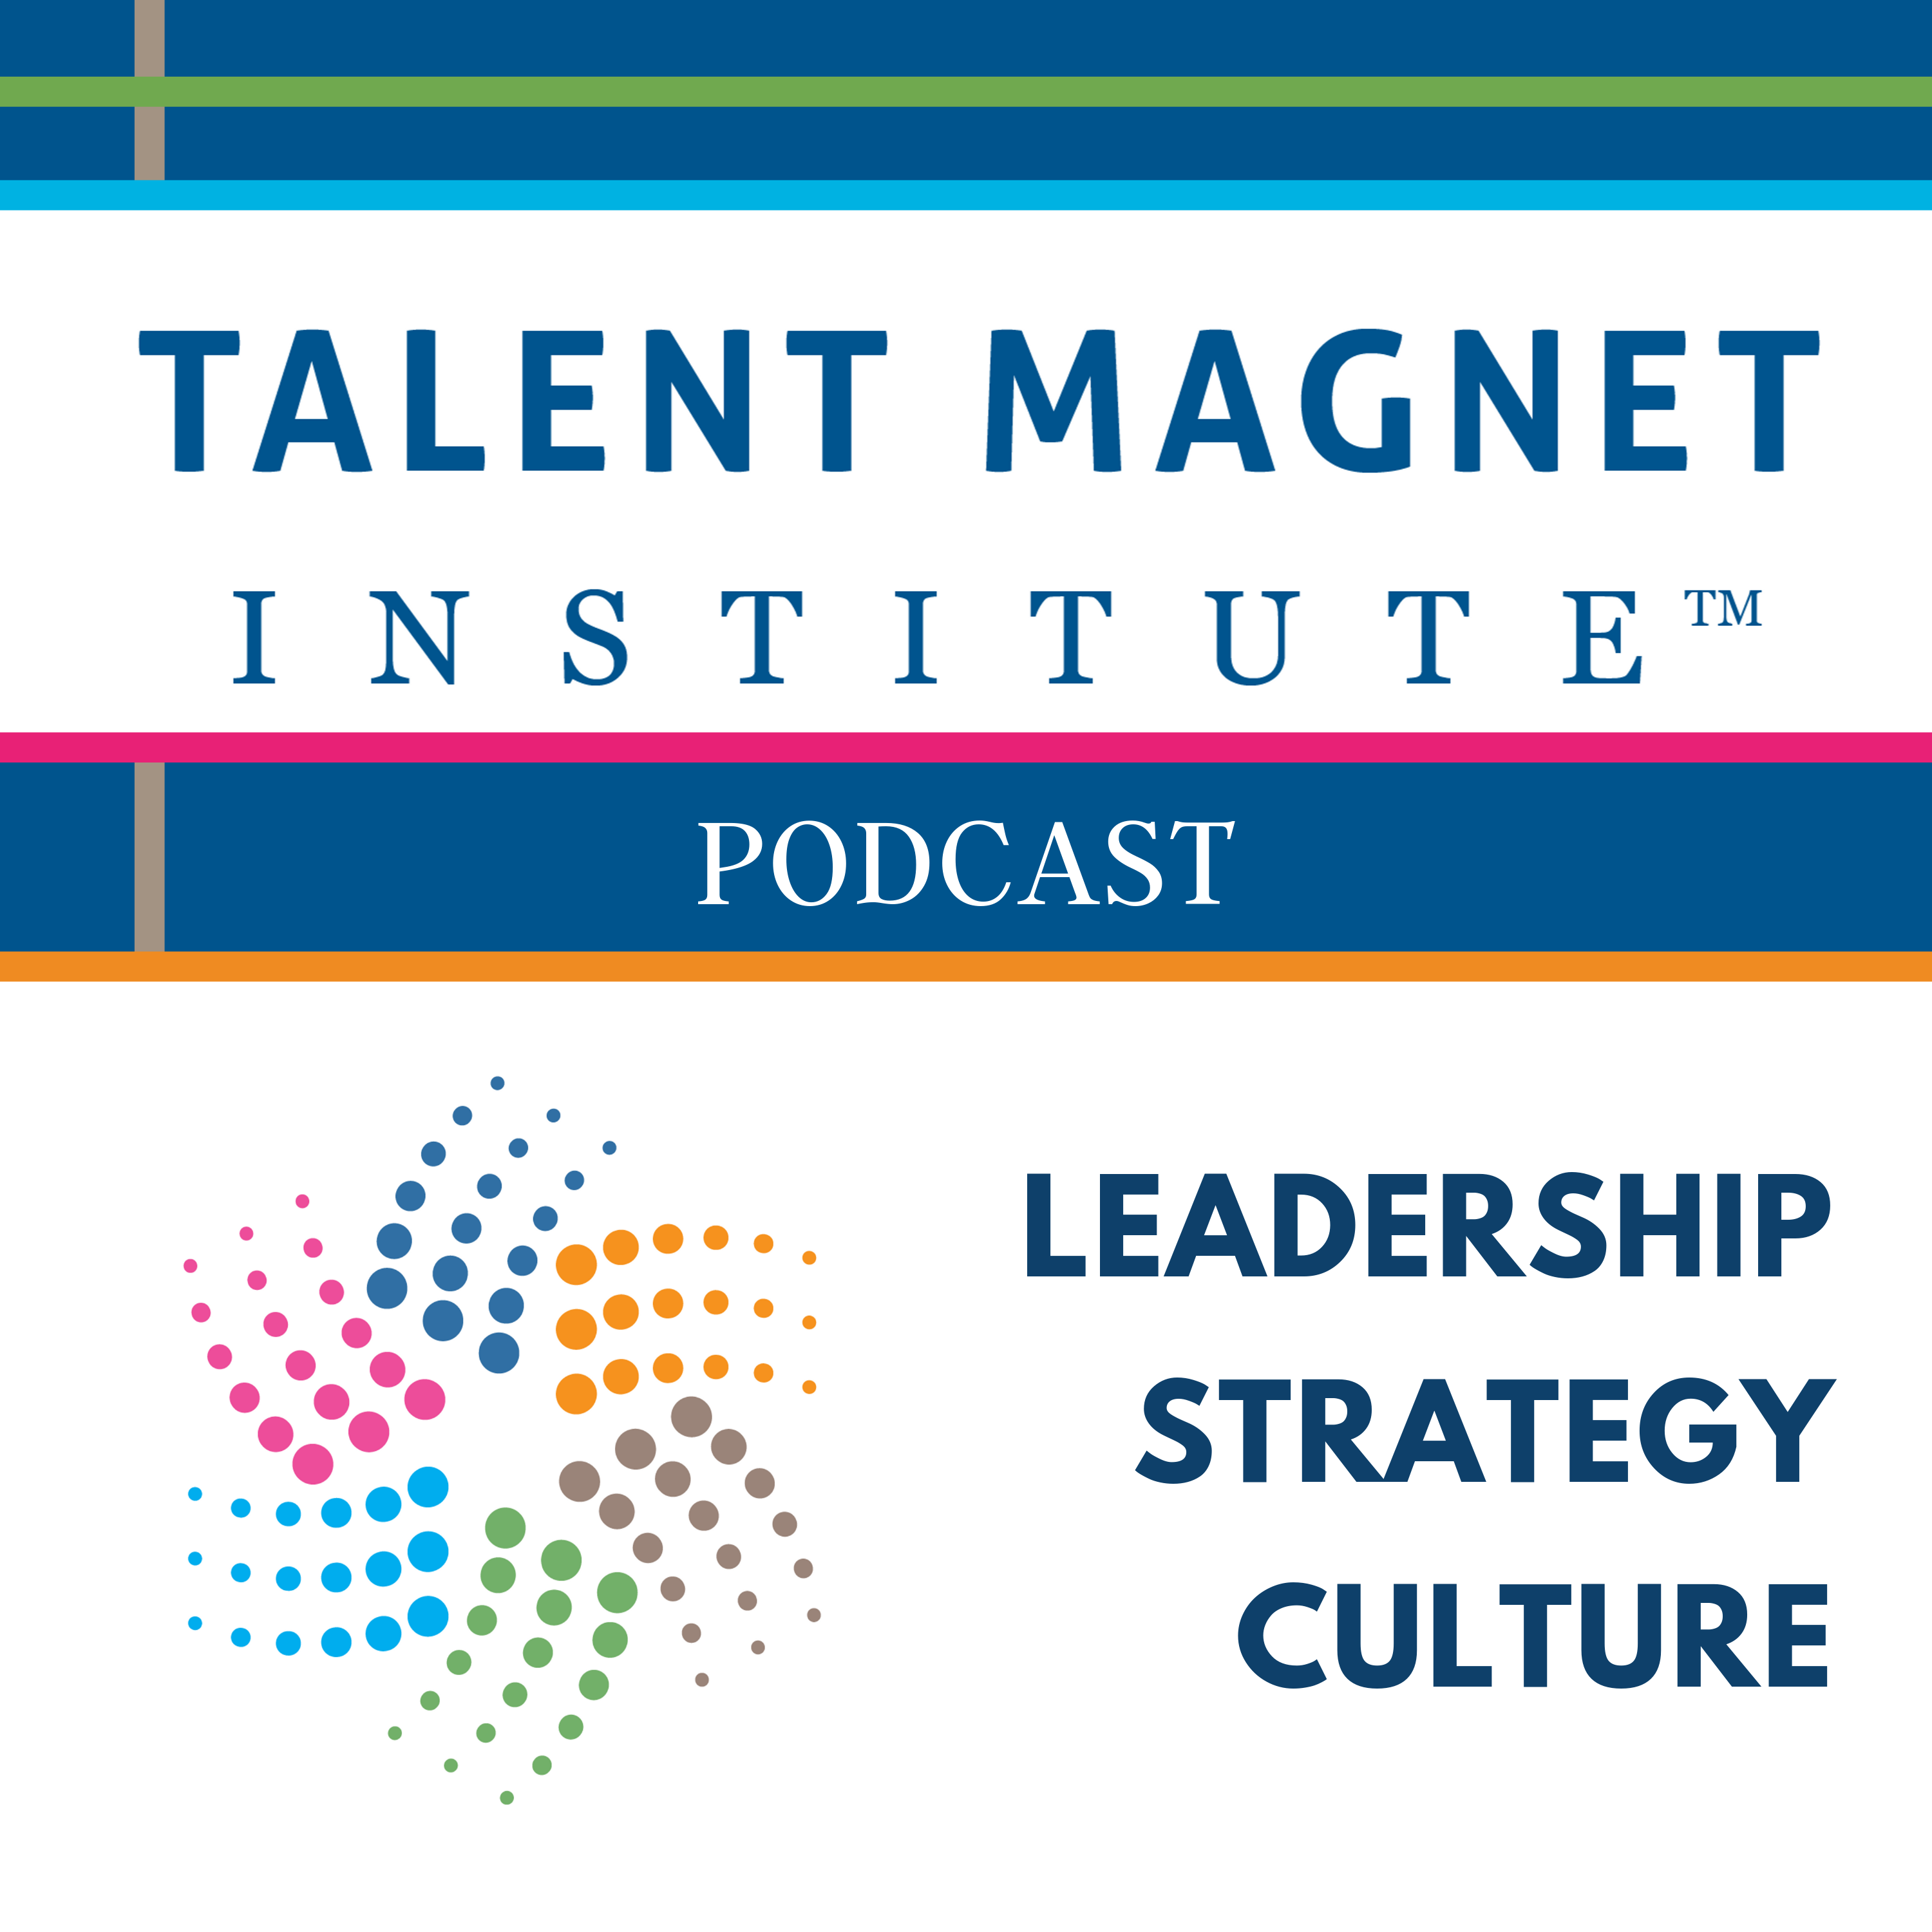 Tactical Wisdom From A Great Career With Master Of Organizational Development, Michael Glenn